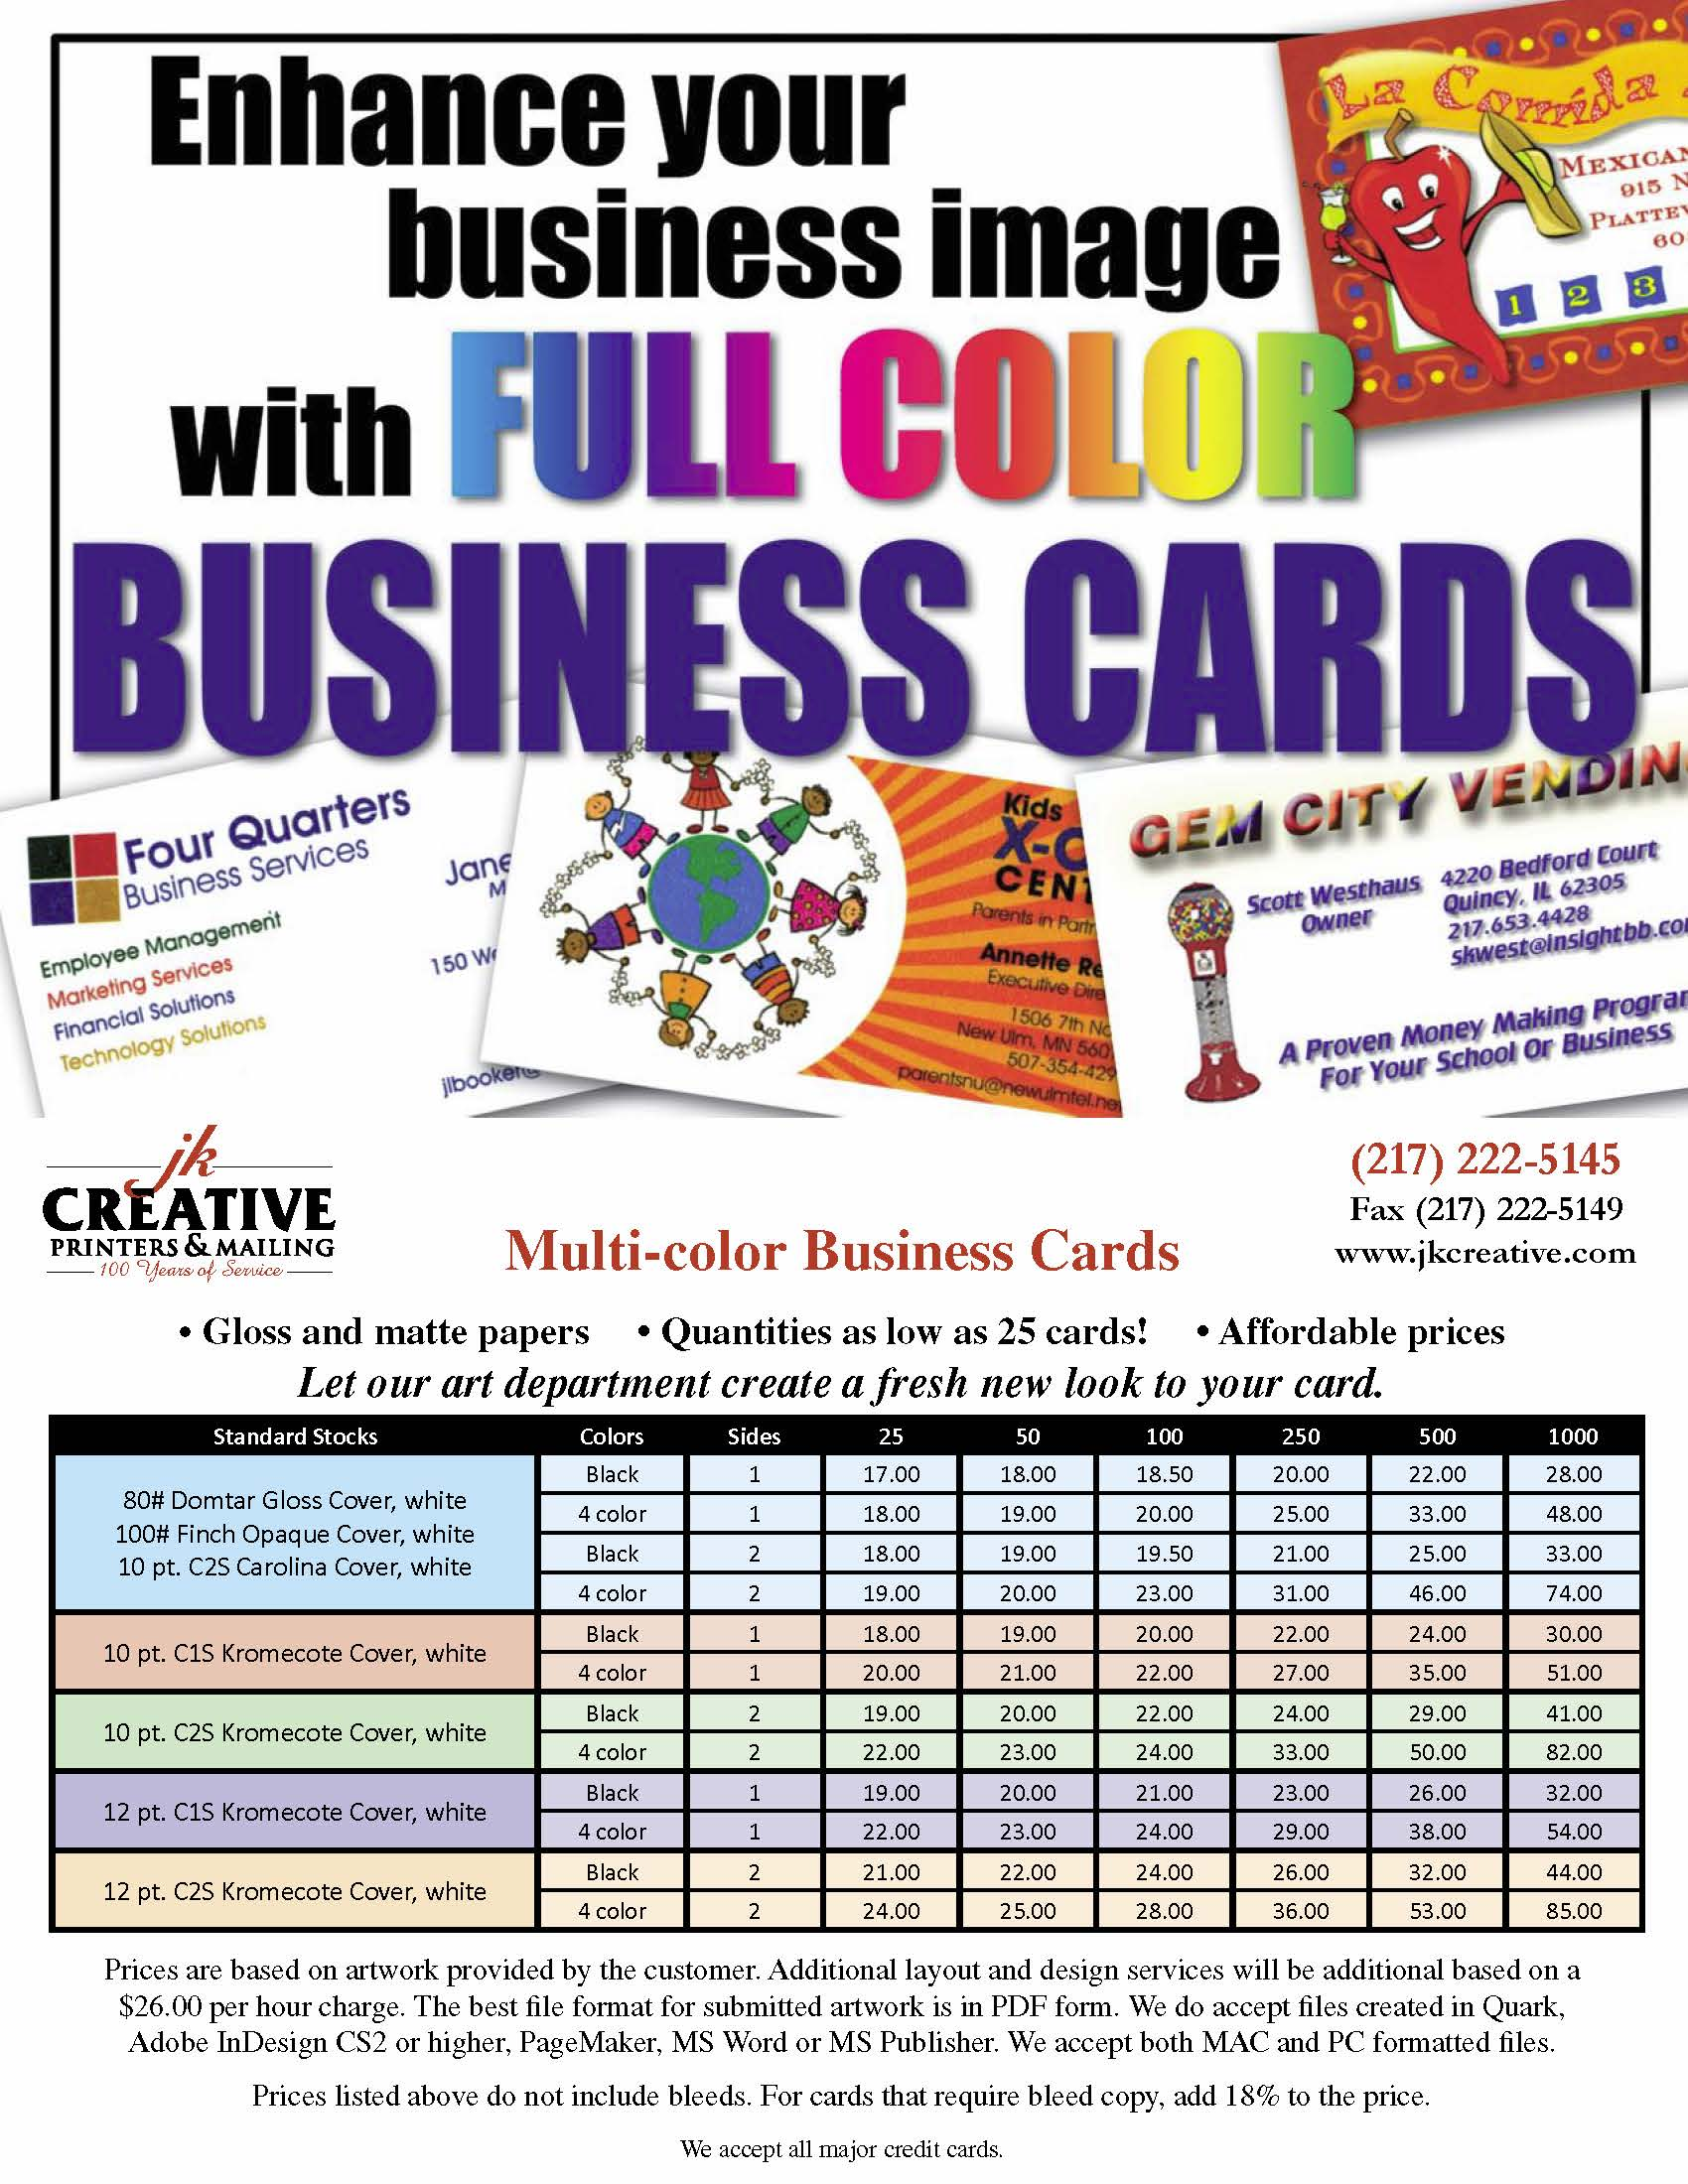 business cards jk creative printers mailing quincy illinois